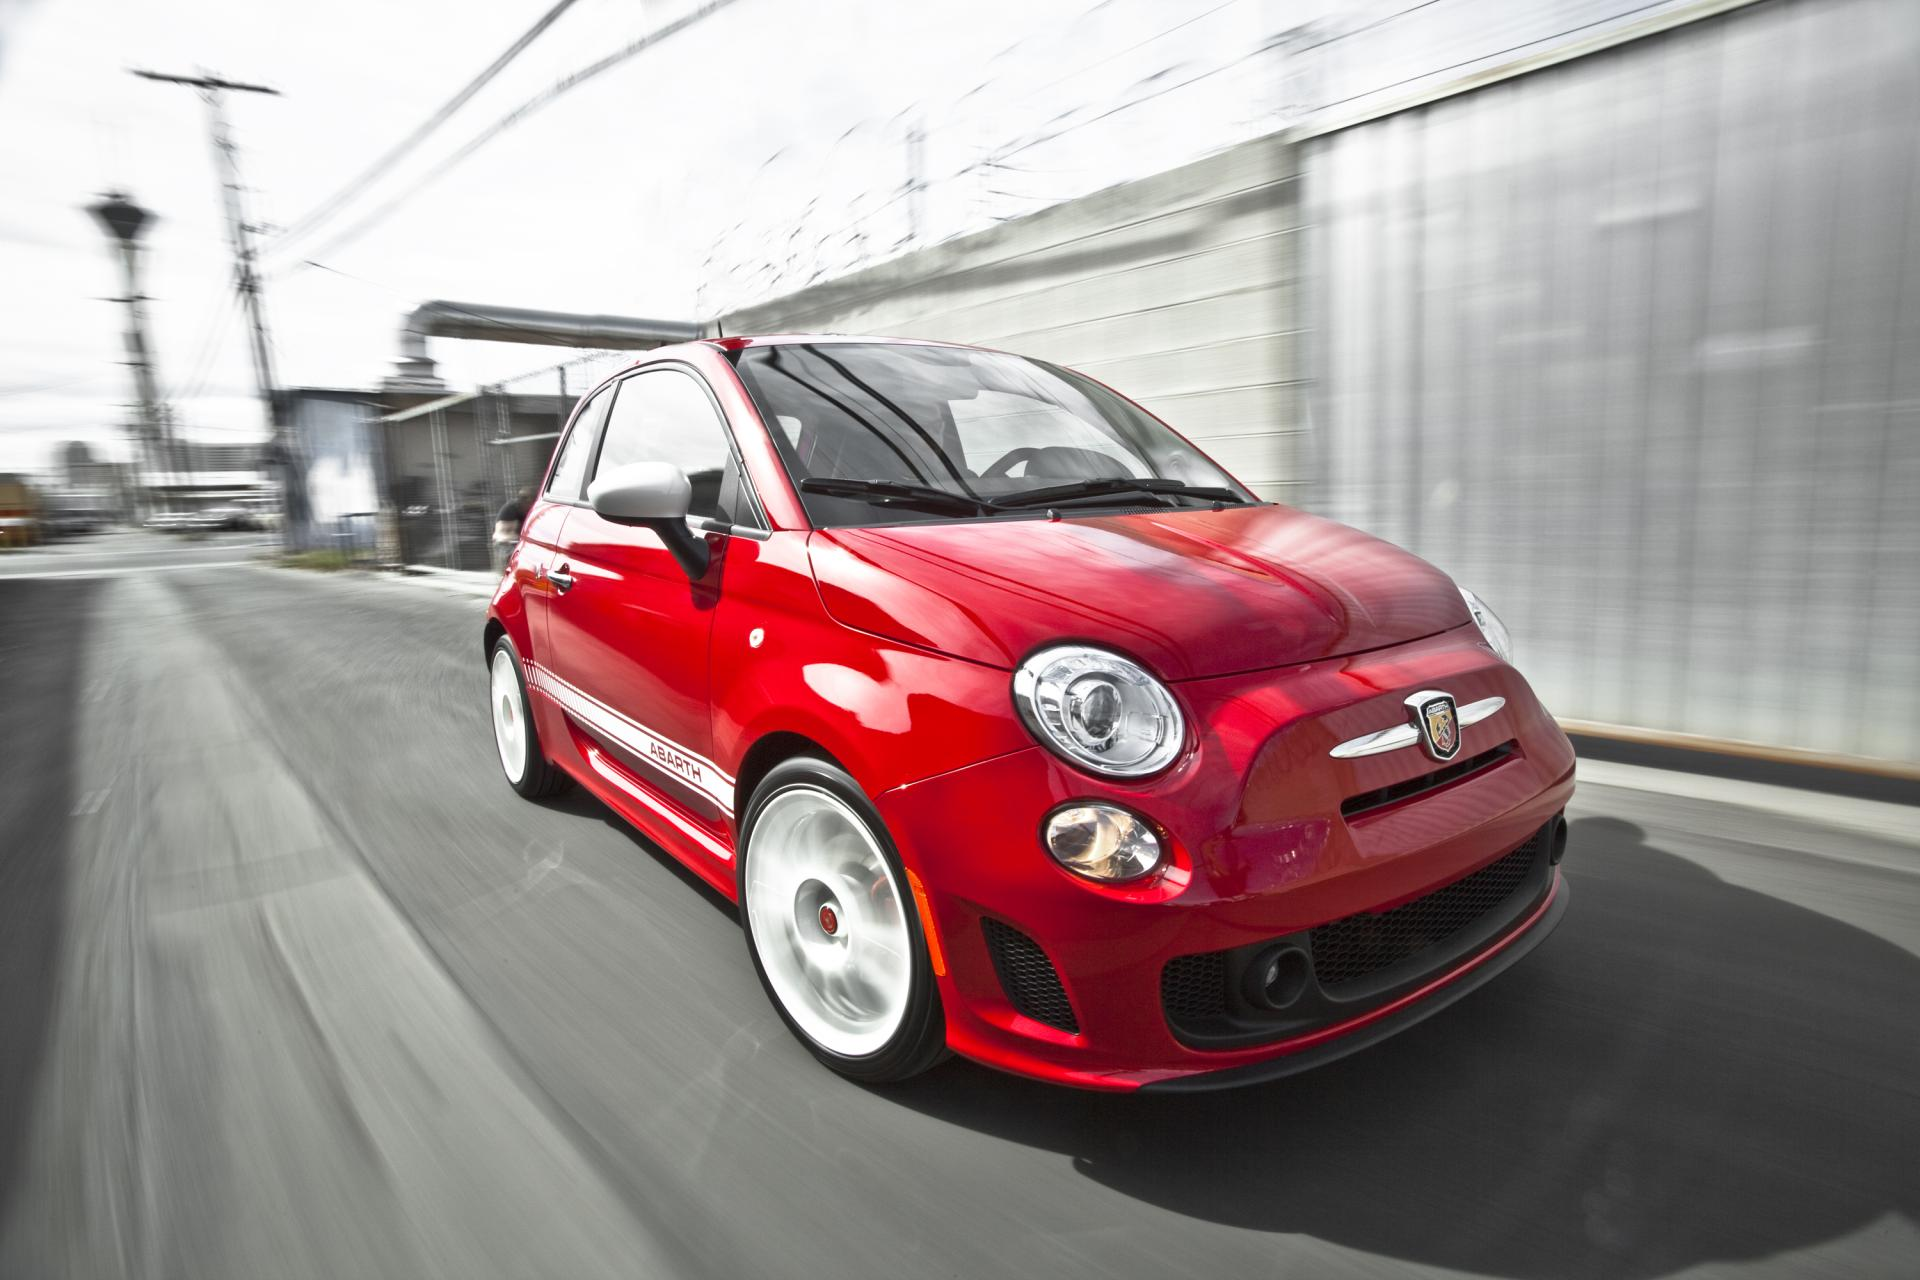 2014 fiat 500 abarth technical specifications and data. Black Bedroom Furniture Sets. Home Design Ideas